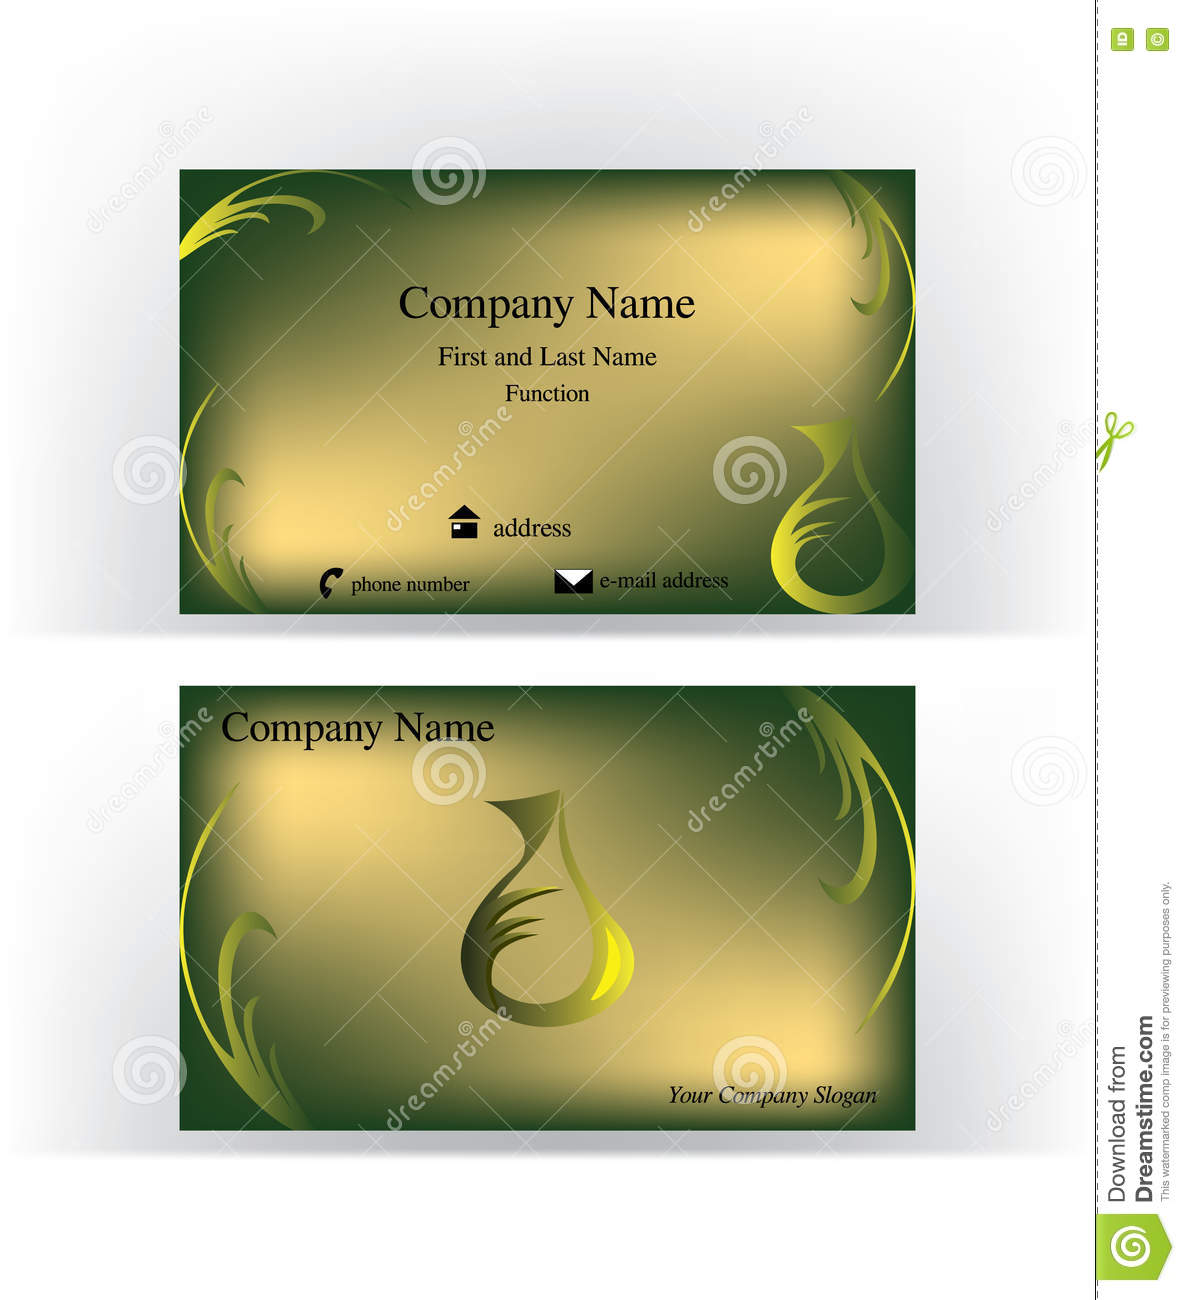 Business card with drop logo imitating a cruet stock vector business card with drop shaped logo imitating a cruet and abstract herb decorations magicingreecefo Image collections